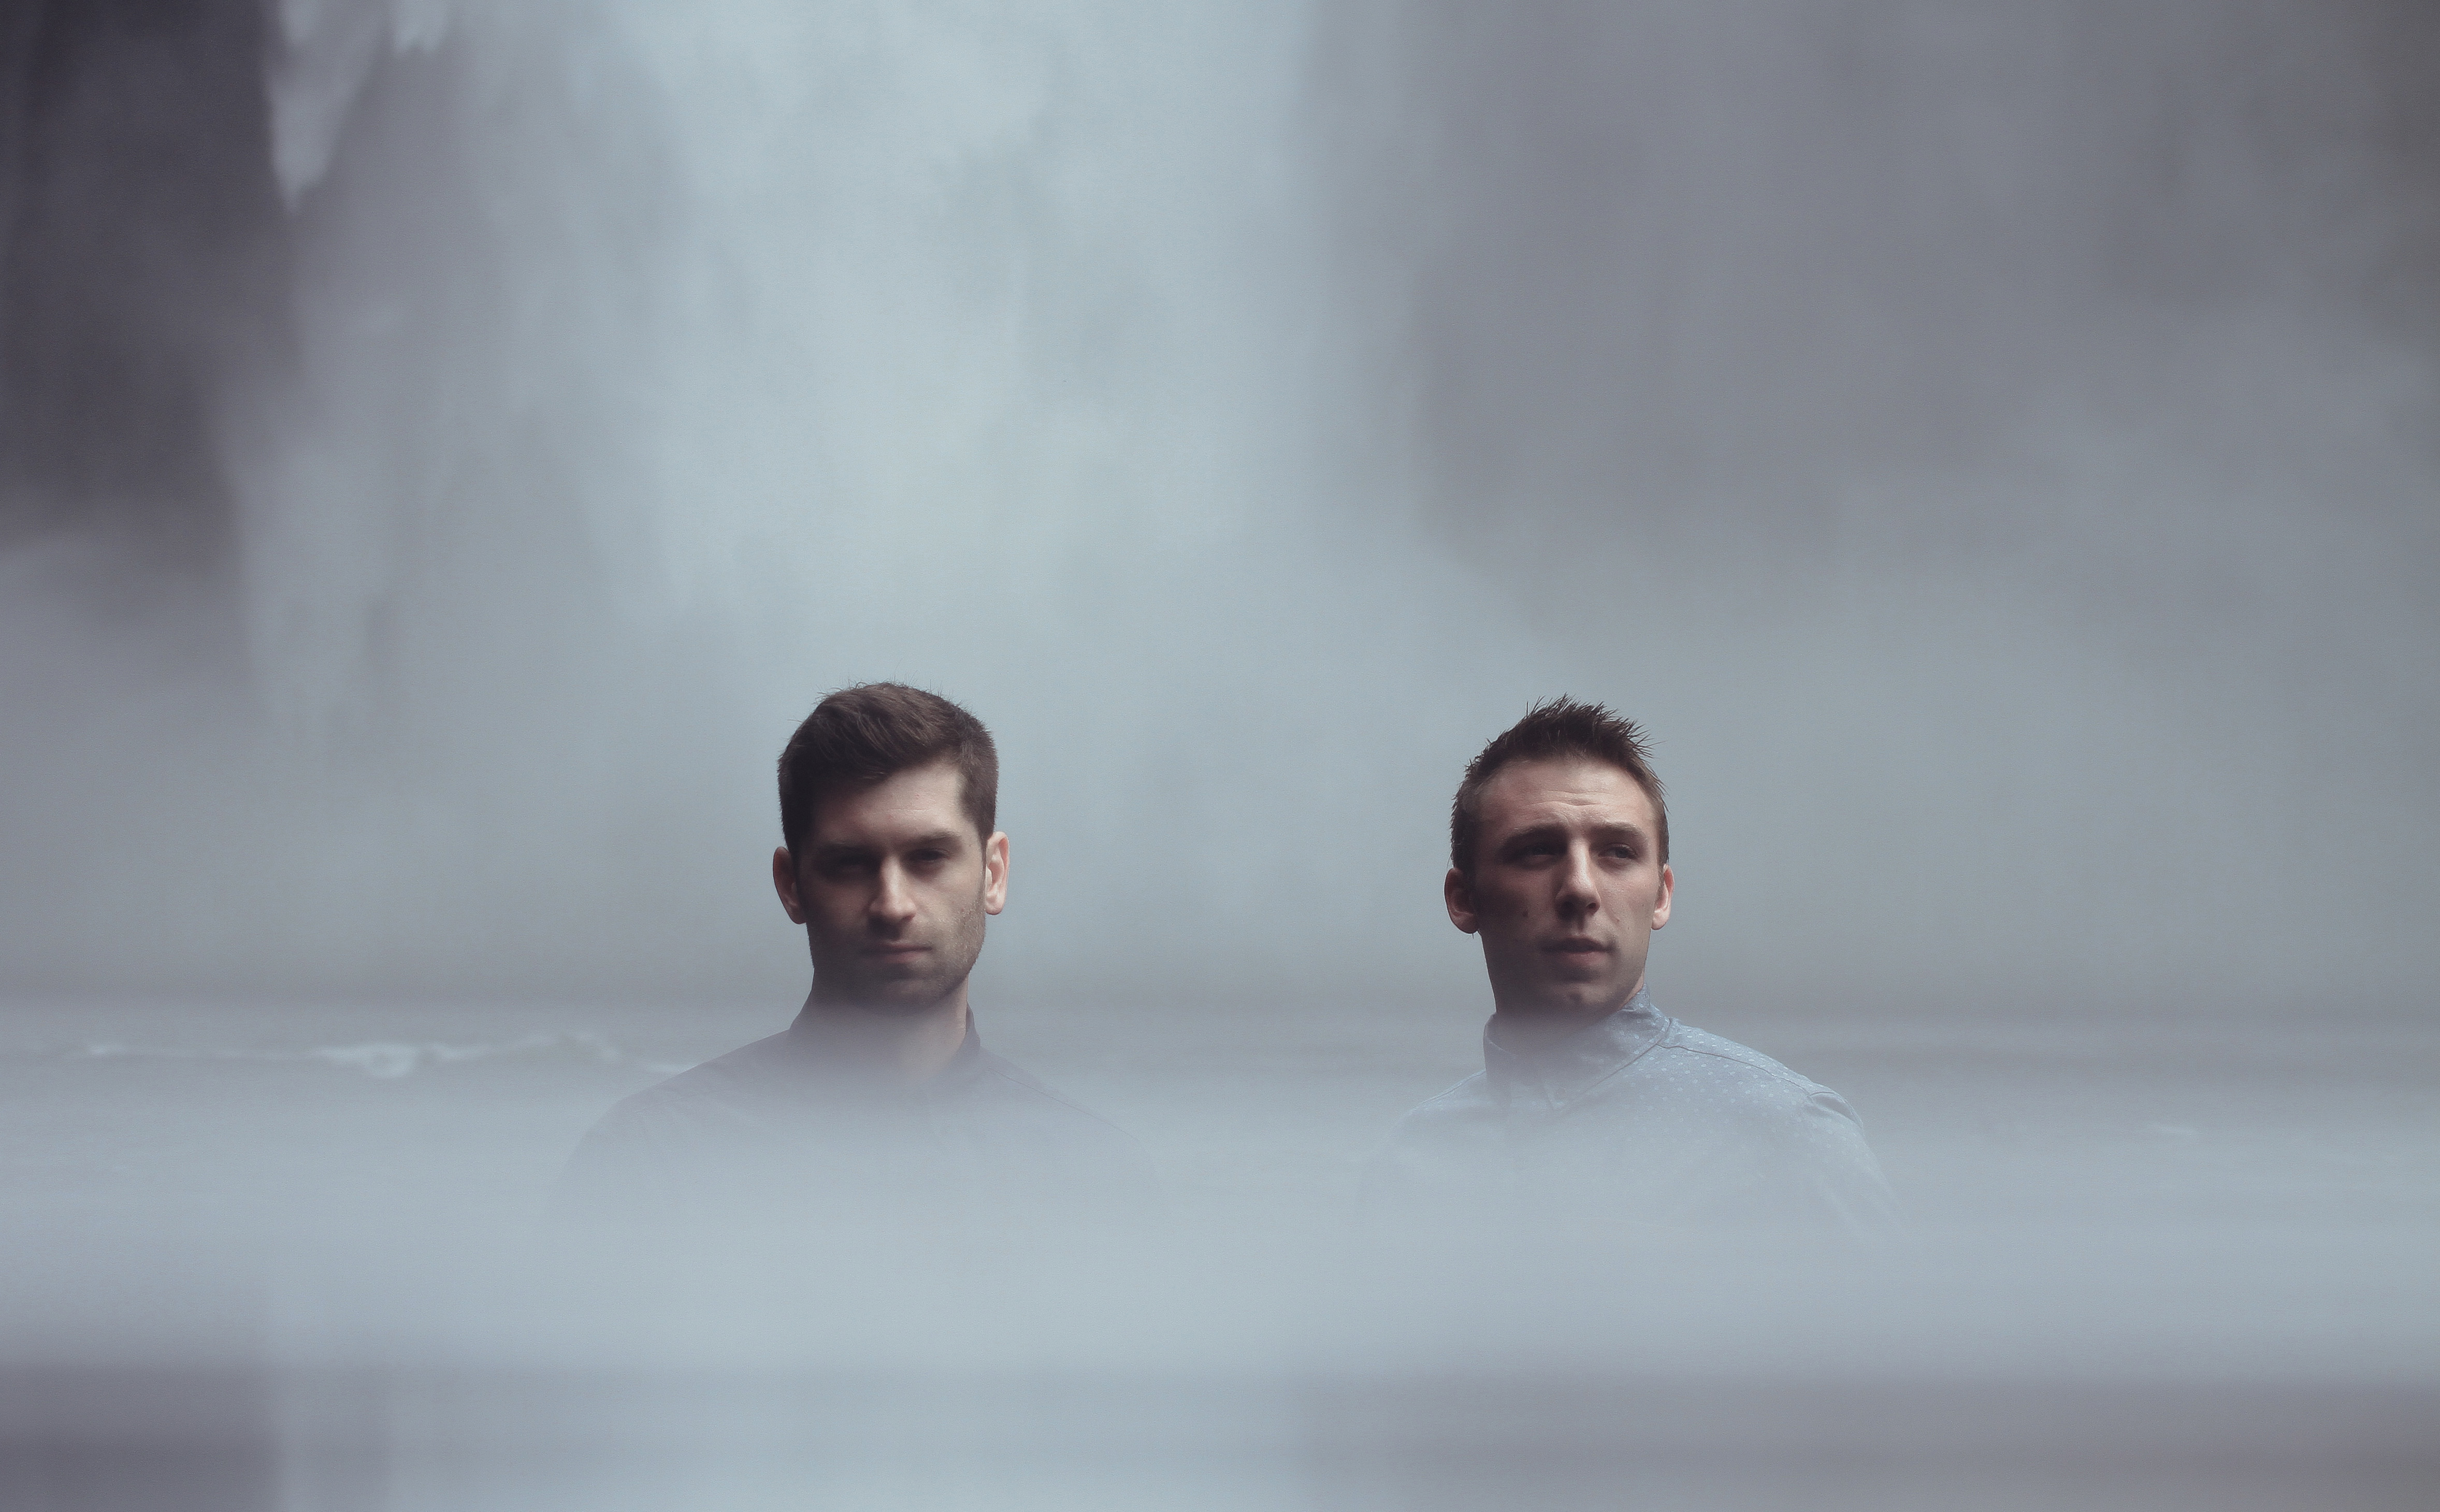 Made up of duo Harrison Mills (left) and Clayton Knight (right), ODESZA are currently touring the Deluxe version of their sophomore record, In Return.